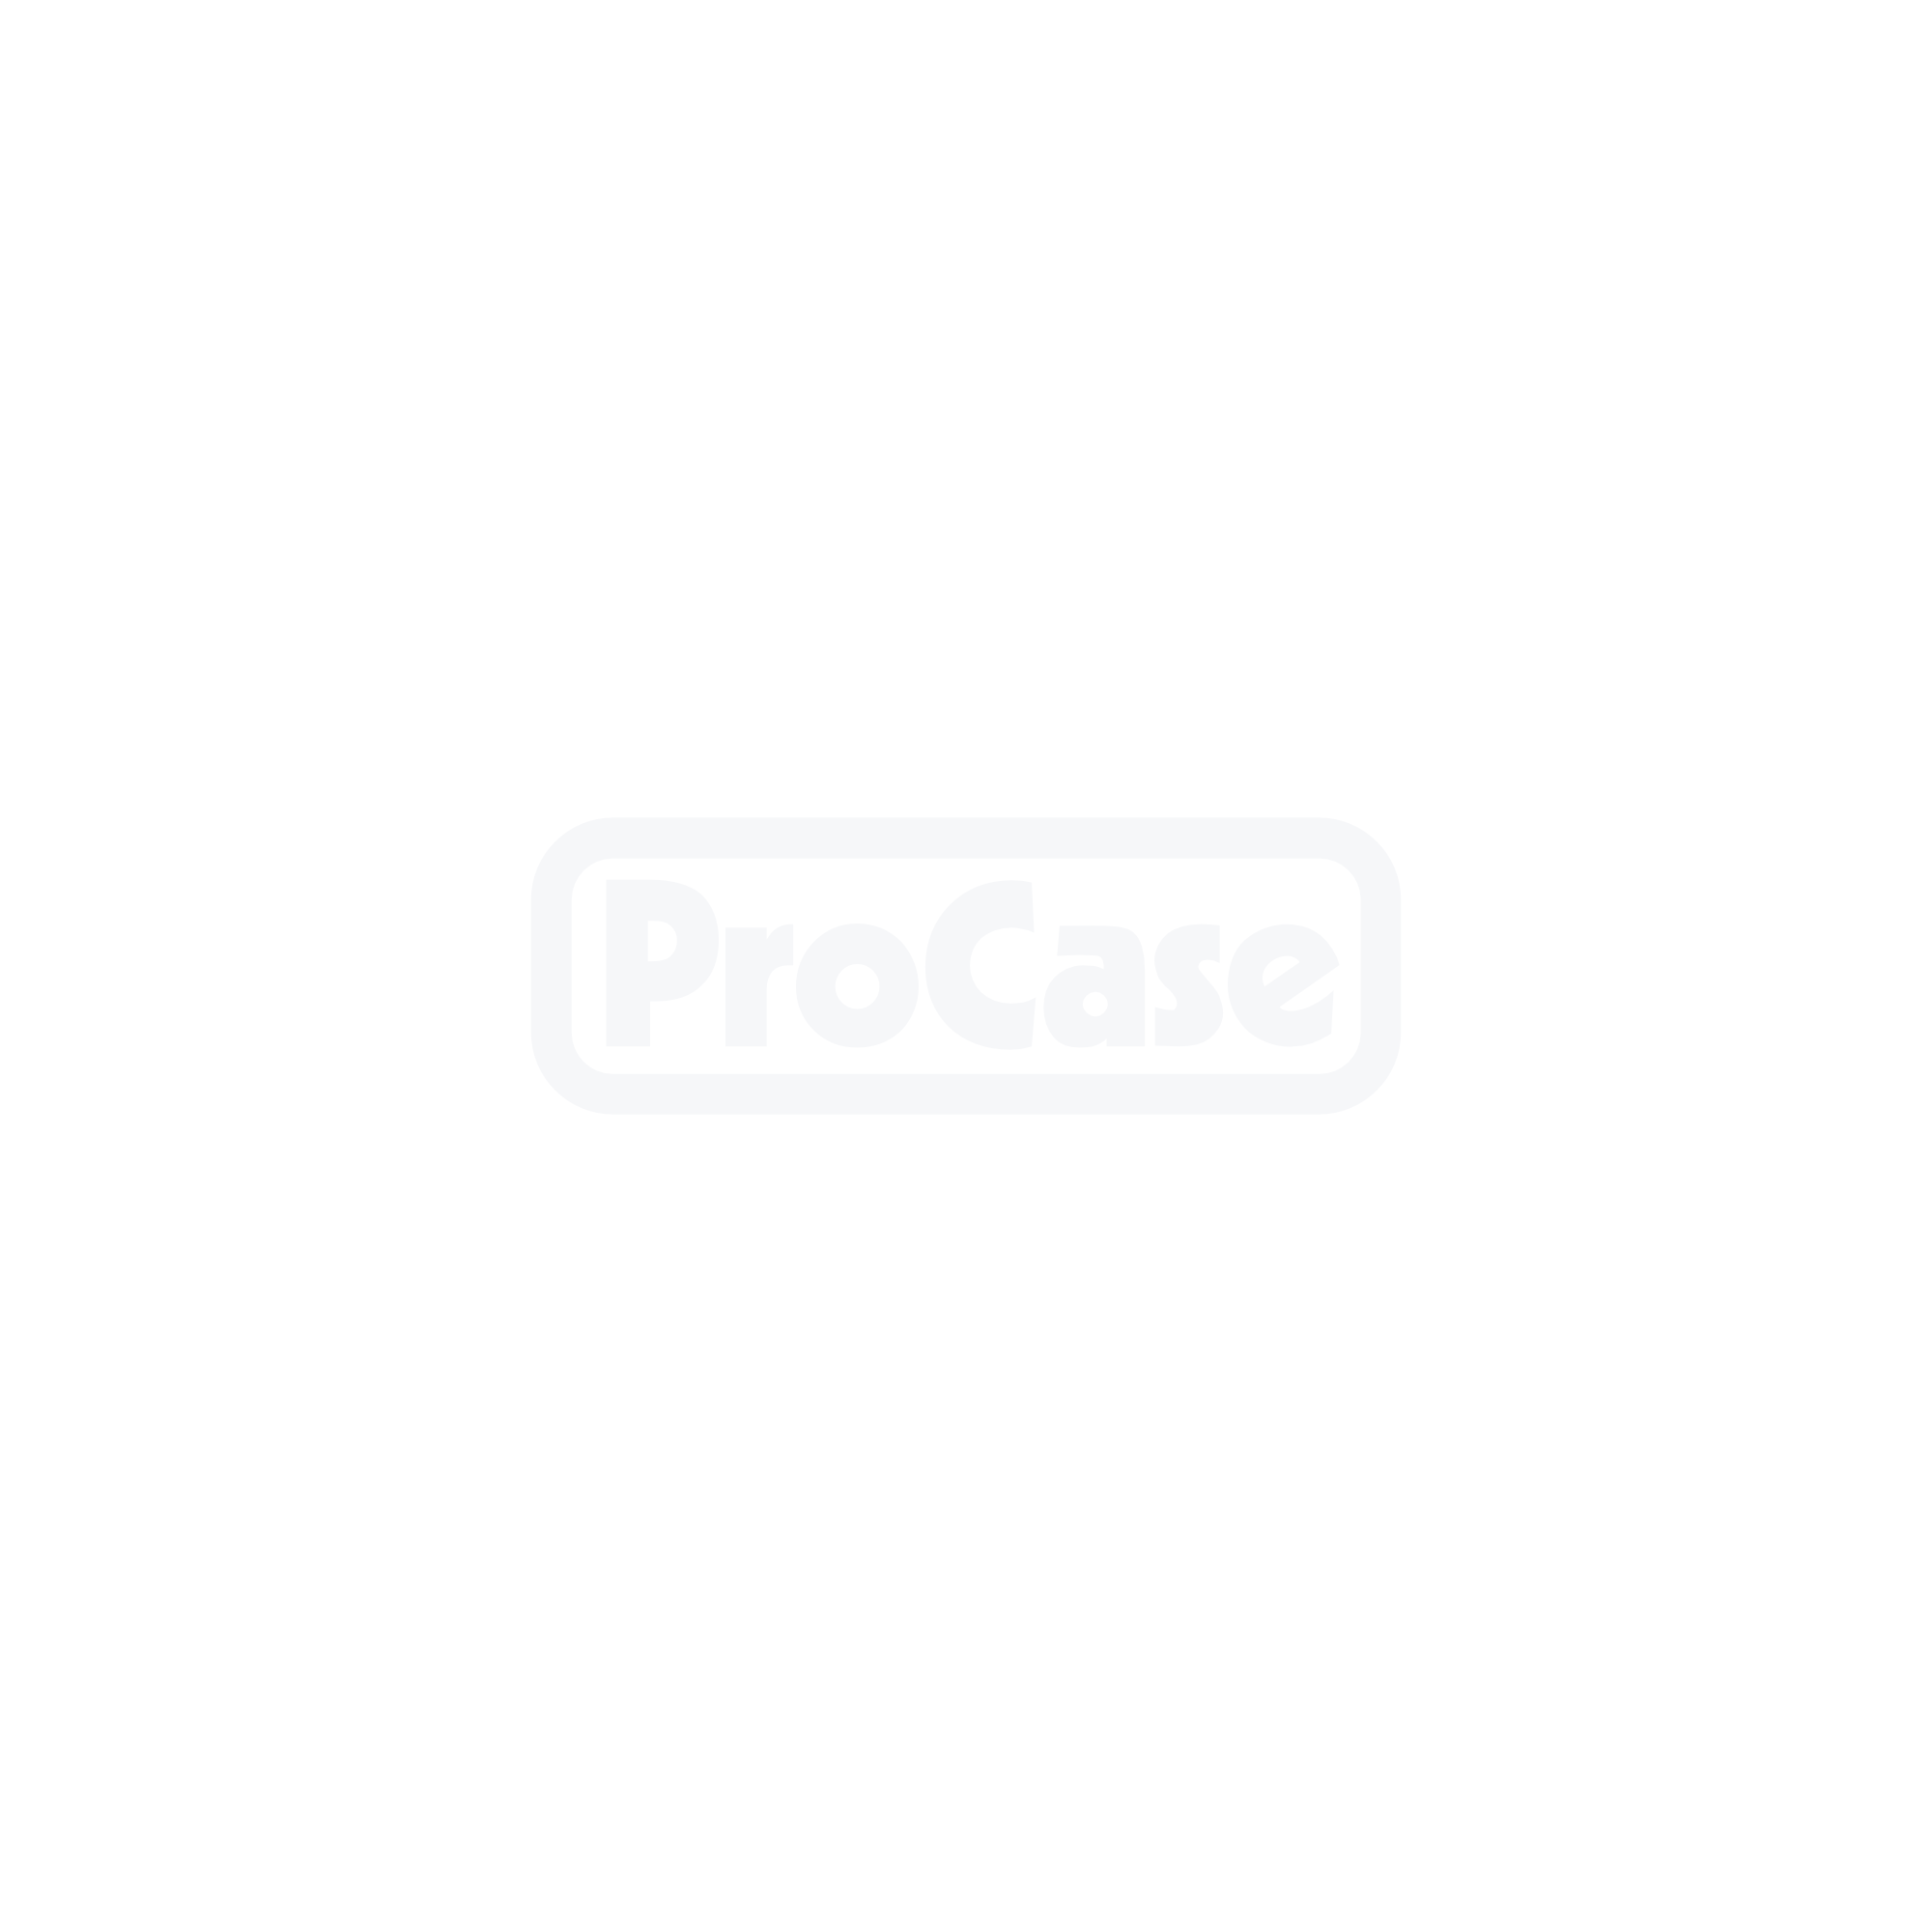 Flightcase für 3 LG M4224C-BA LCD Display